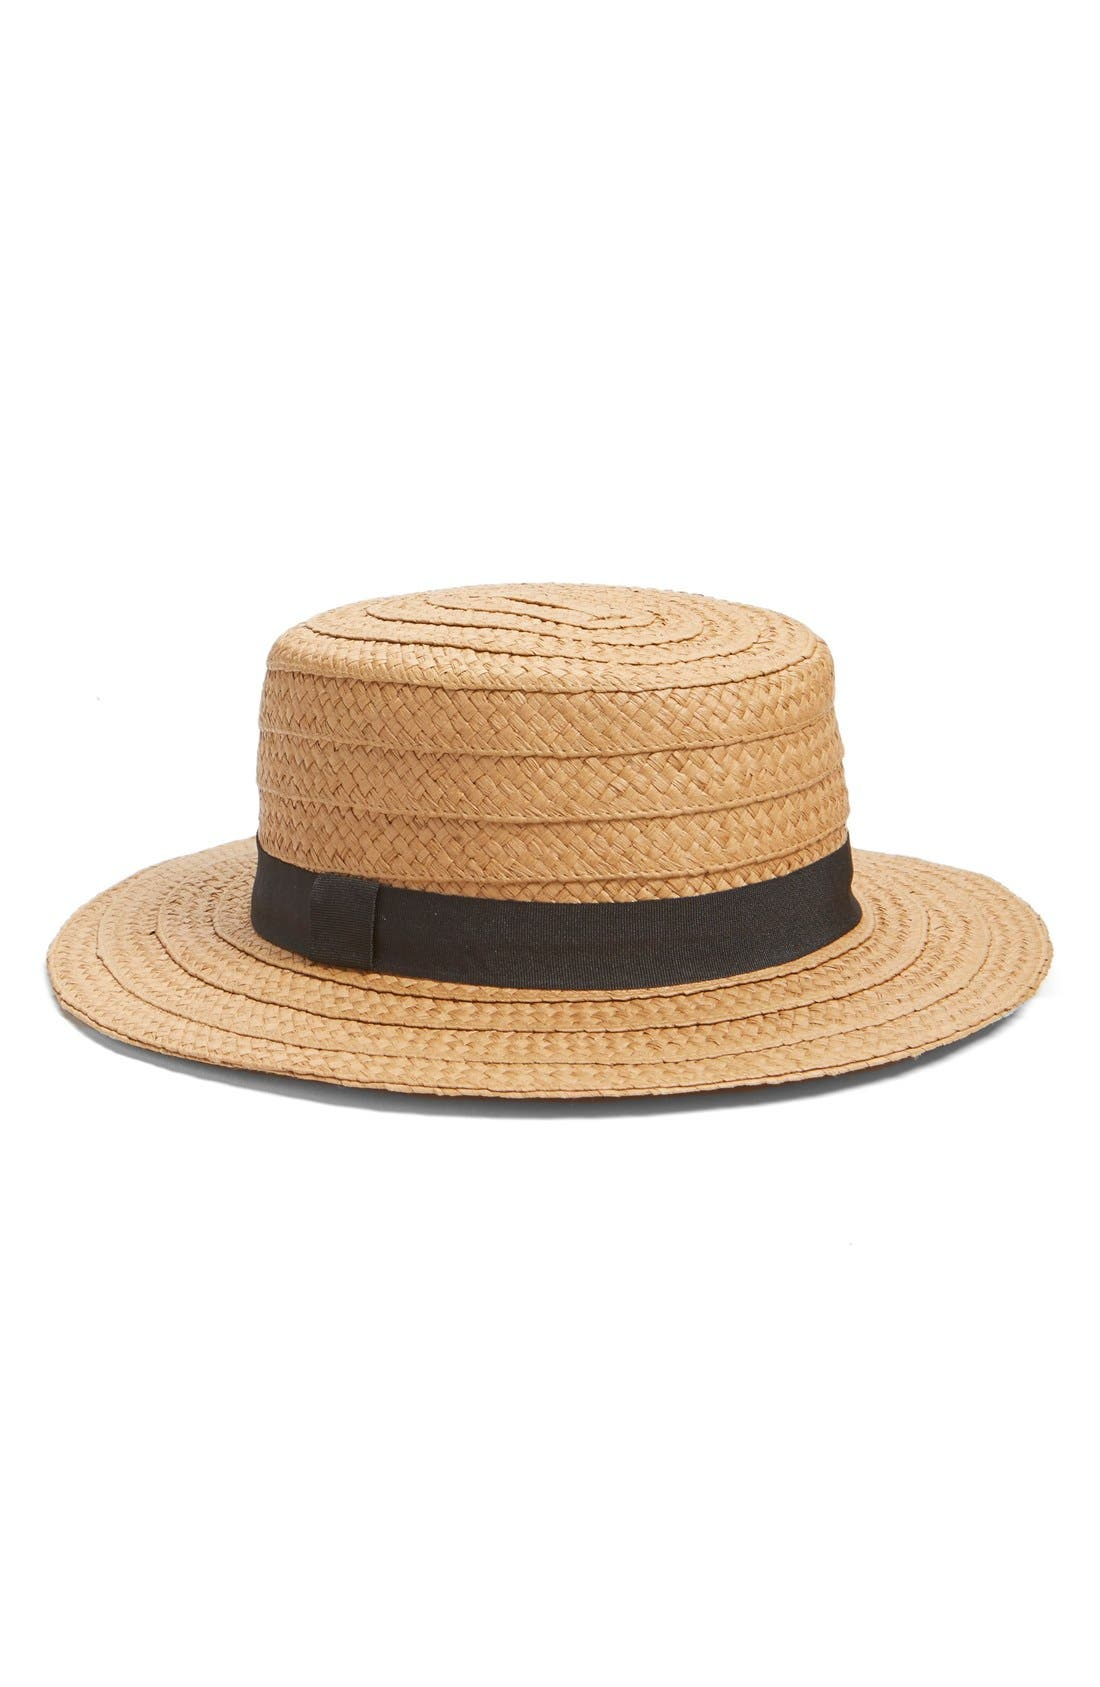 Straw Boater Hat,                             Main thumbnail 3, color,